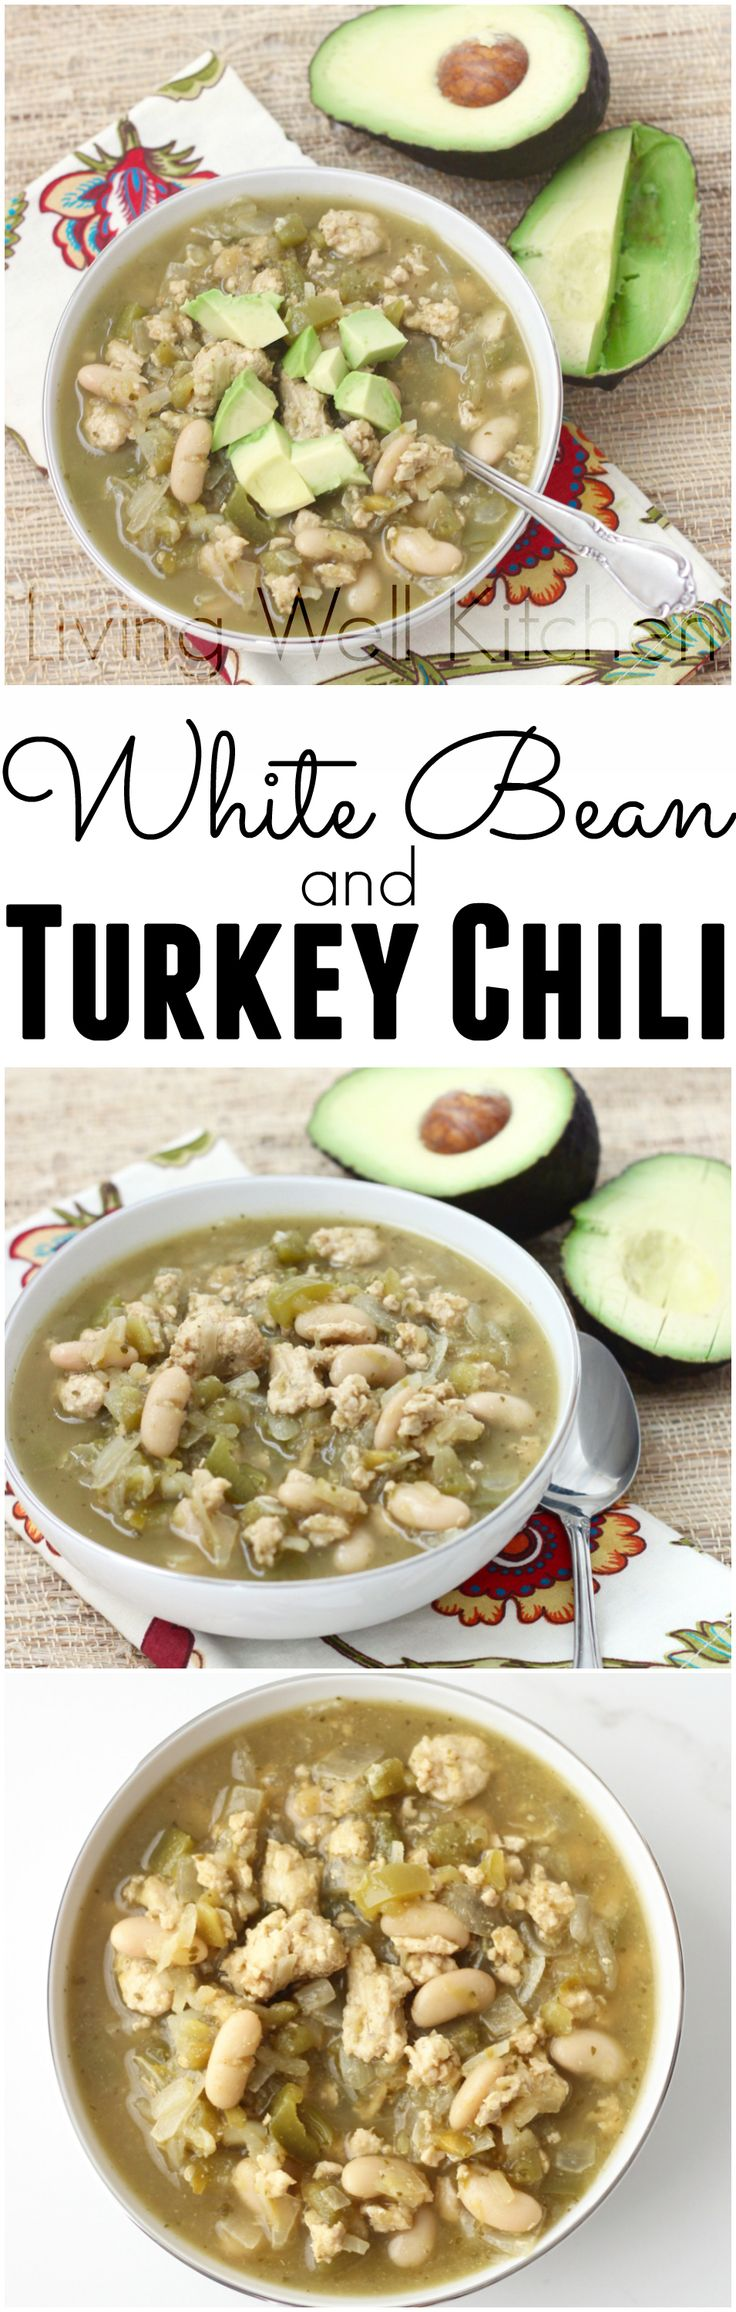 White Bean and Turkey Chili is ready in 30 minutes, full of flavor, vegetables, and spicy homemade goodness. Perfect for a chilly night when you need a quick & healthy supper! from Living Well Kitchen @memeinge